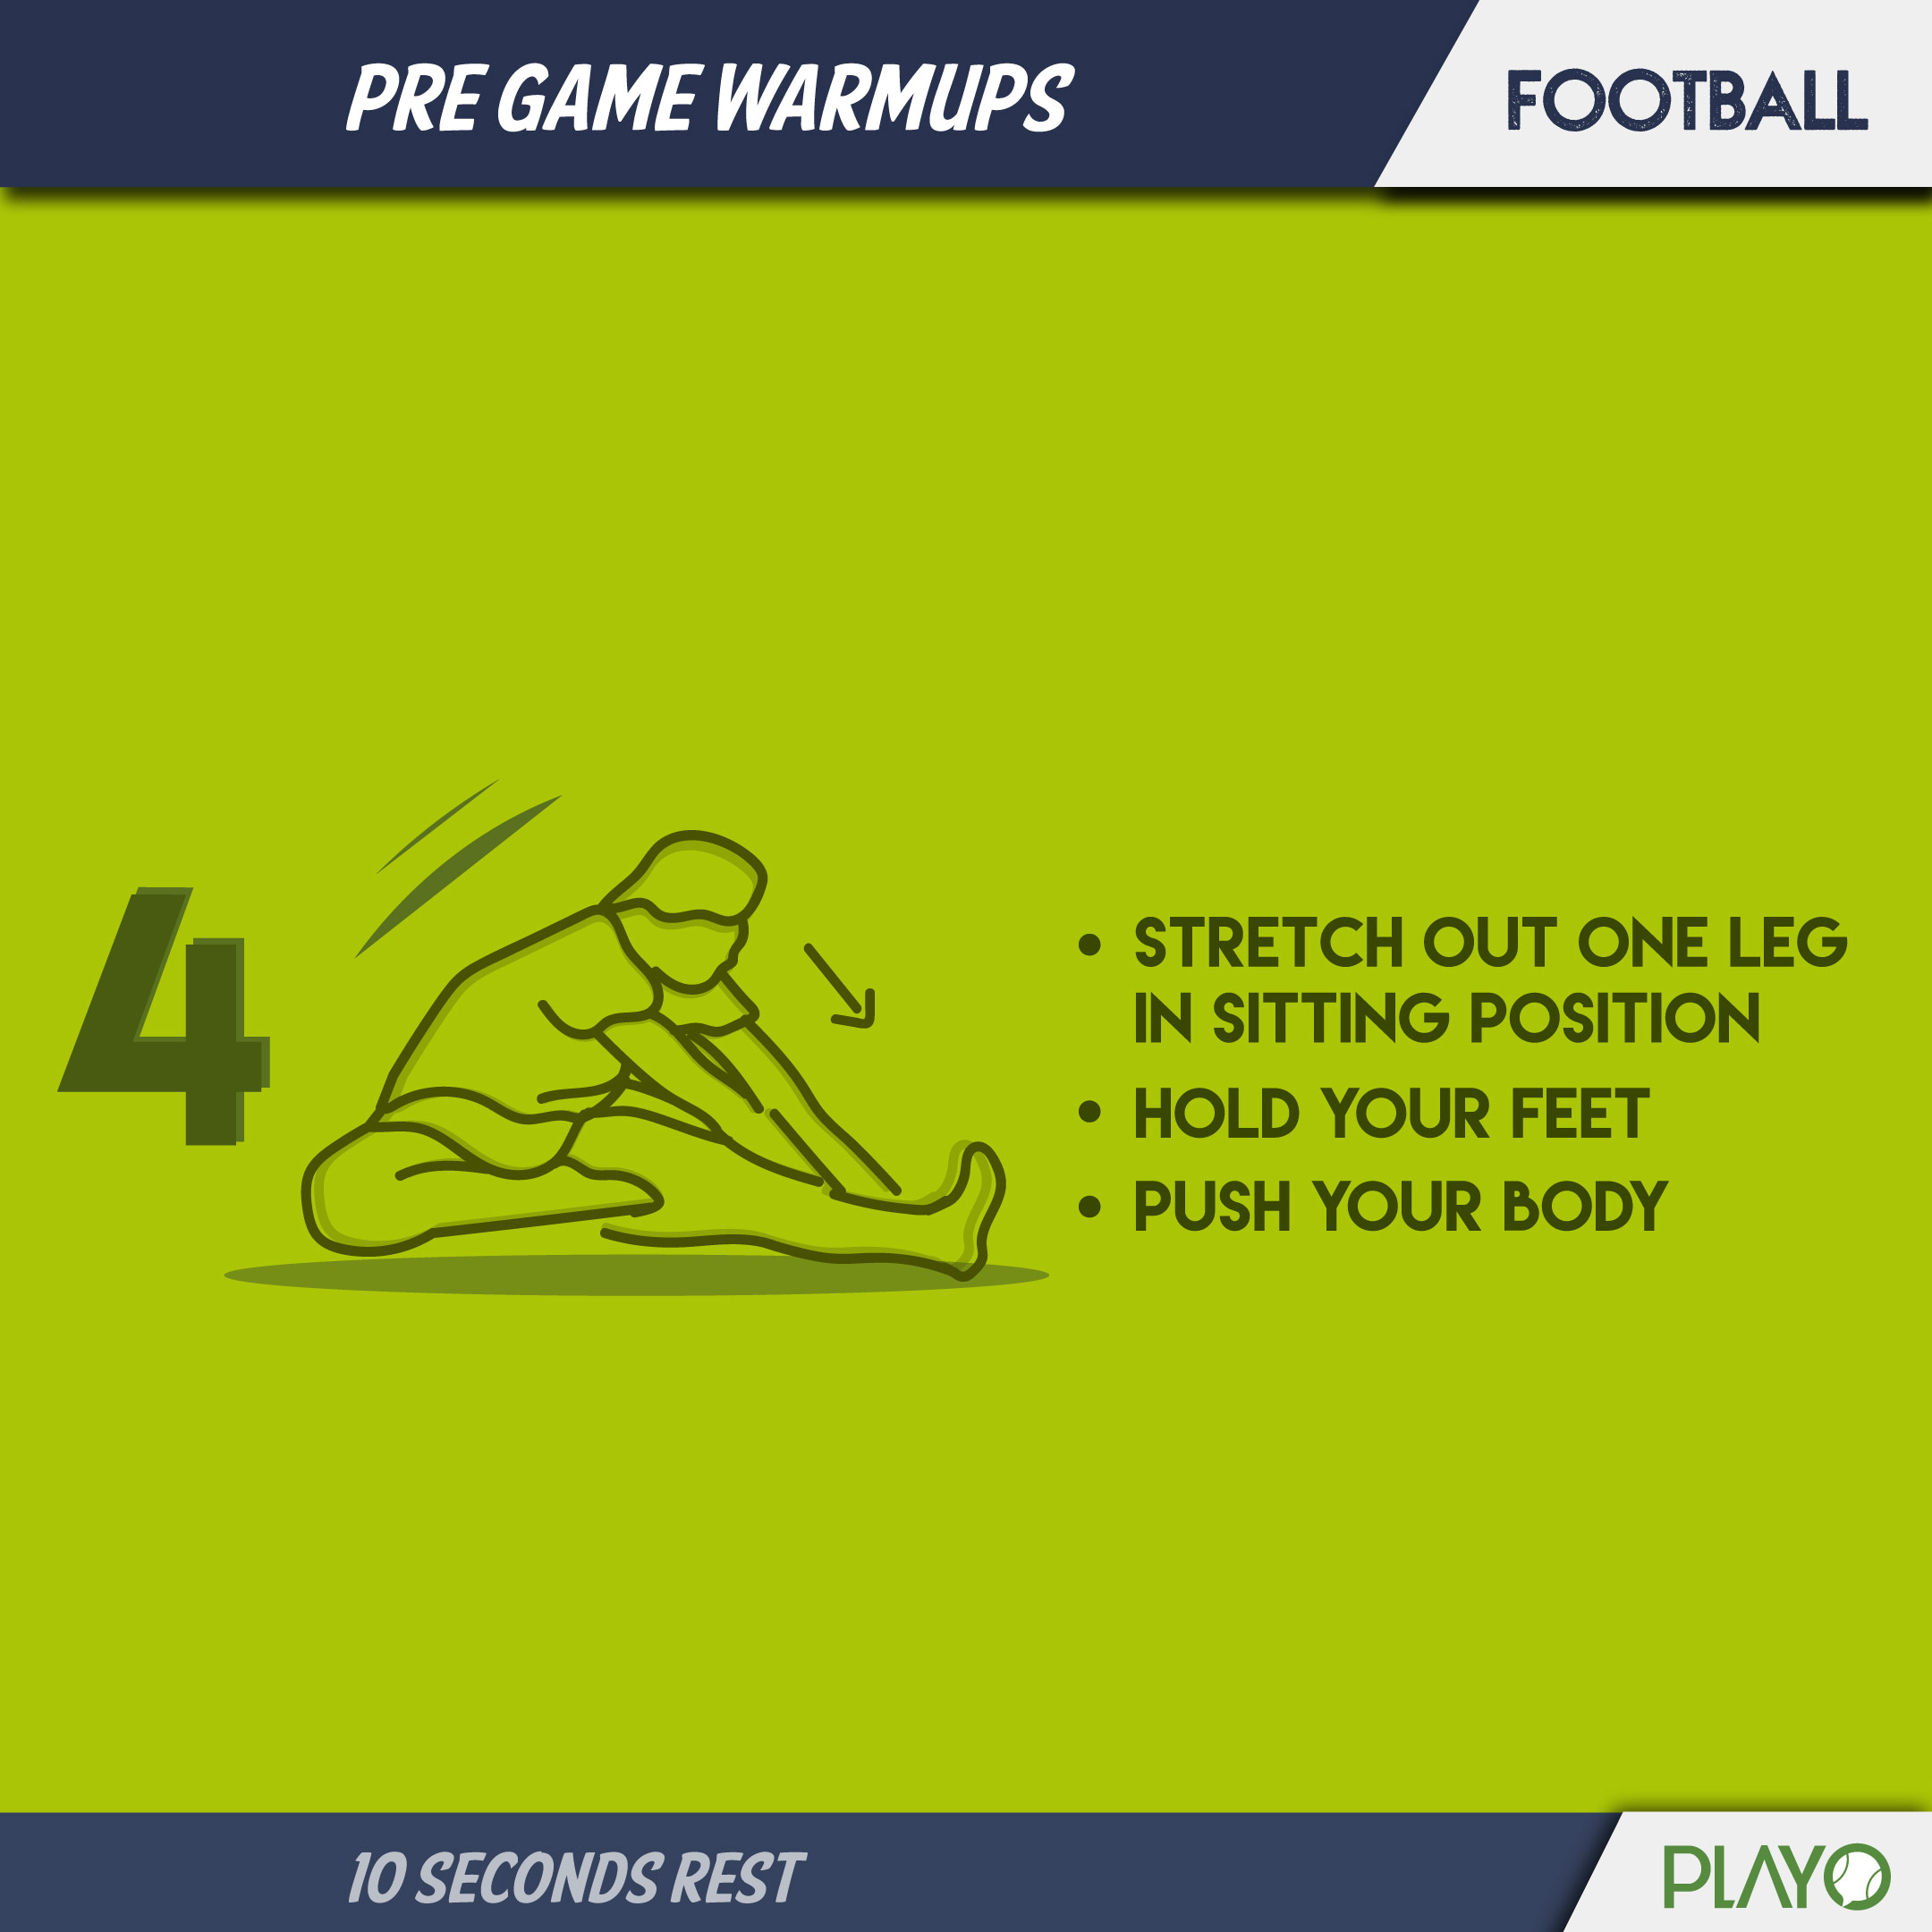 Hamstring stretch for warm-up before football